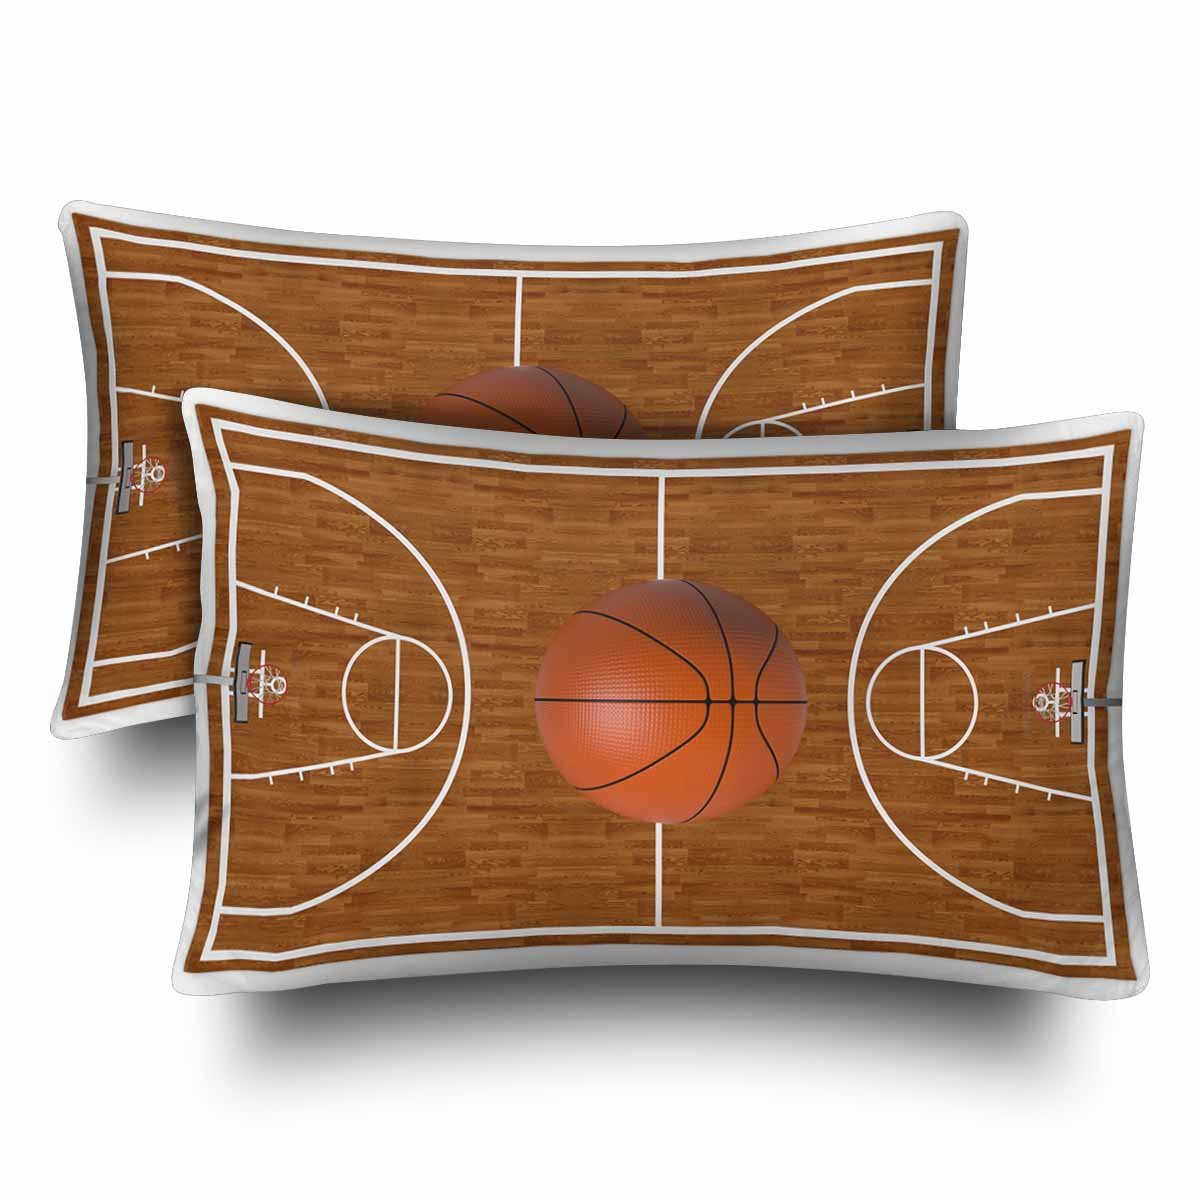 InterestPrint Sports Basketball Court Playtime Boys Wood Pillow Cases Pillowcase Standard Size 20x30 Set of 2, Rectangle Pillow Covers Protector for Home Couch Sofa Bedding Decorative by InterestPrint (Image #1)